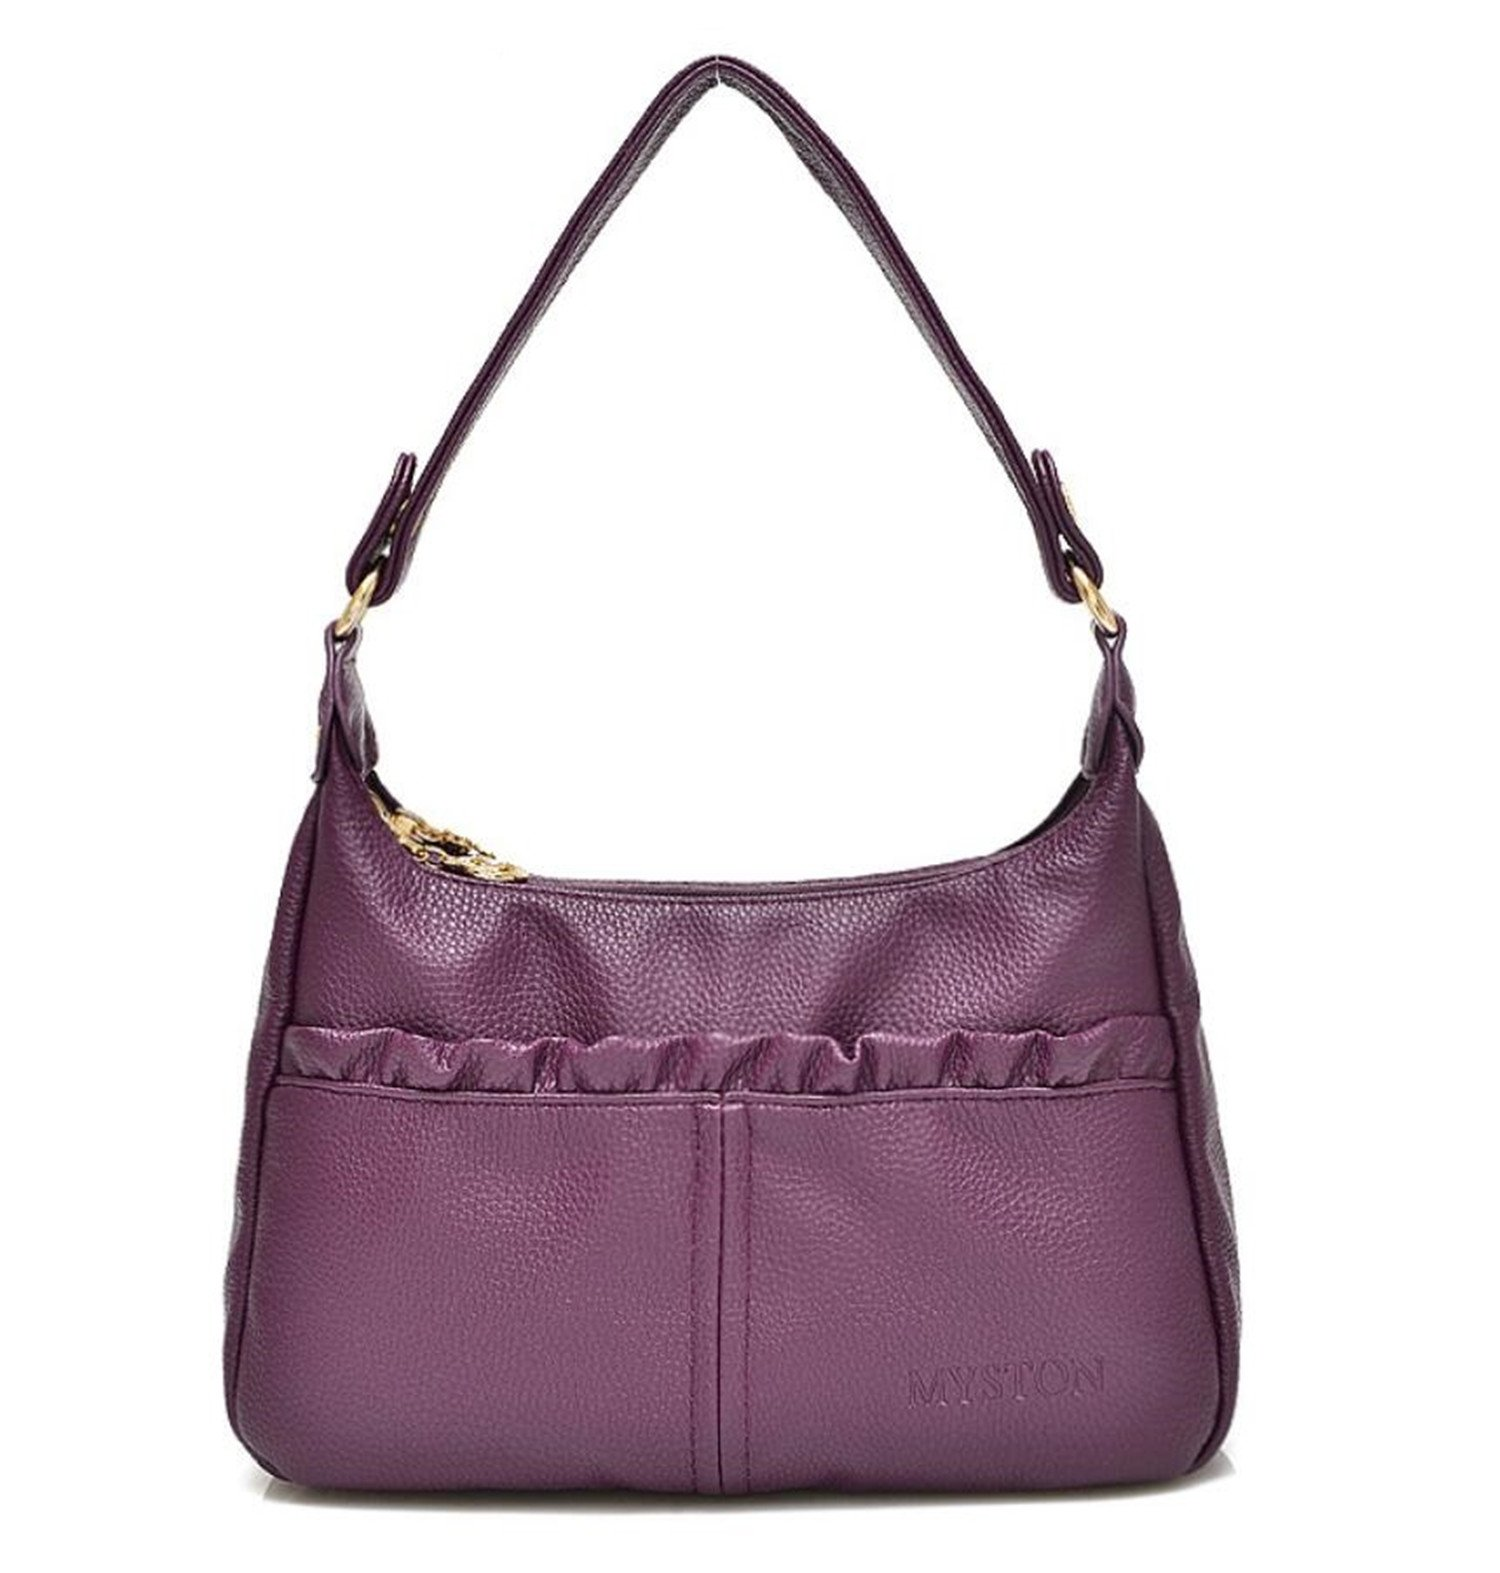 Bagtopia Women's Double Zipper Soft Hobo Style PU Leather Purse Shoulder Bags Small Cross-body Handbags(Purple)